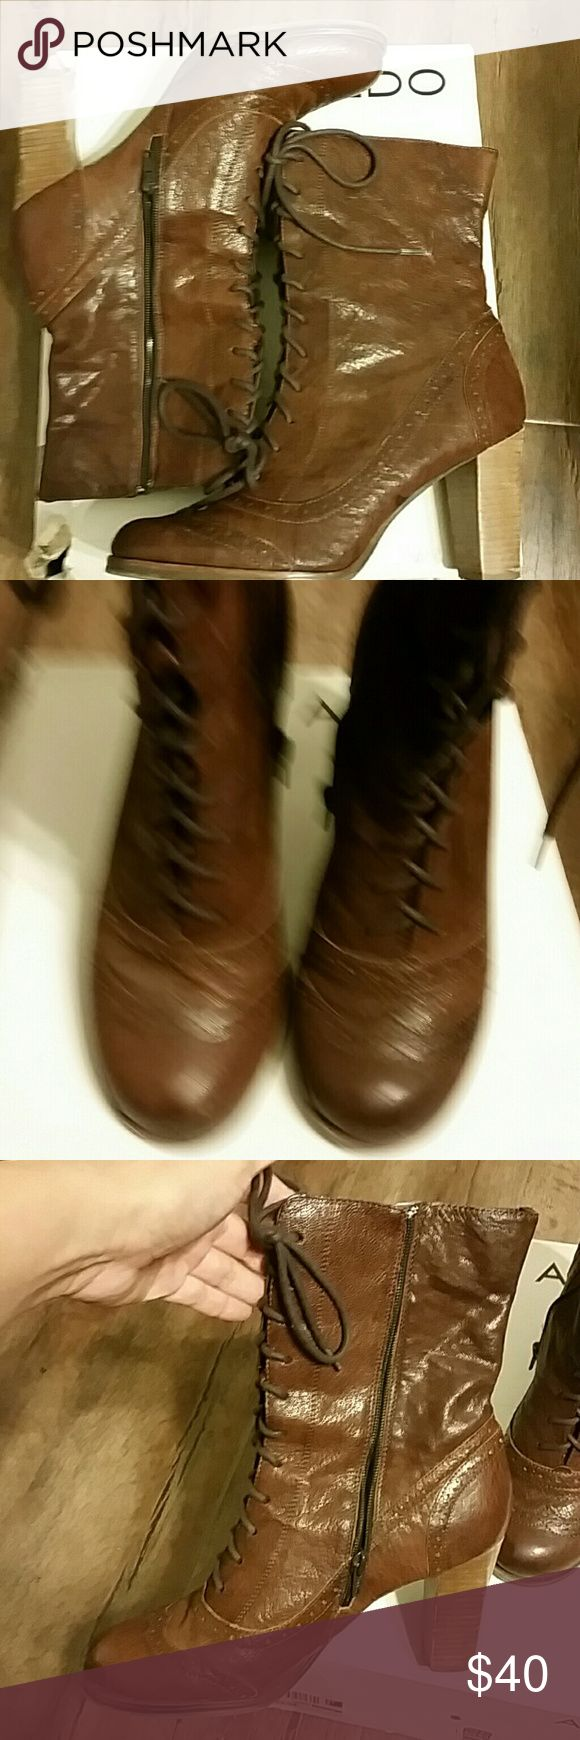 Beautfuil Aldo size 10 half calfs! Jelly Aldo boots....excellent condition! Beautiful brown heel is the 3.5 to high for me. Beautiful brown would make any outfit look amazing! Aldo Shoes Ankle Boots & Booties